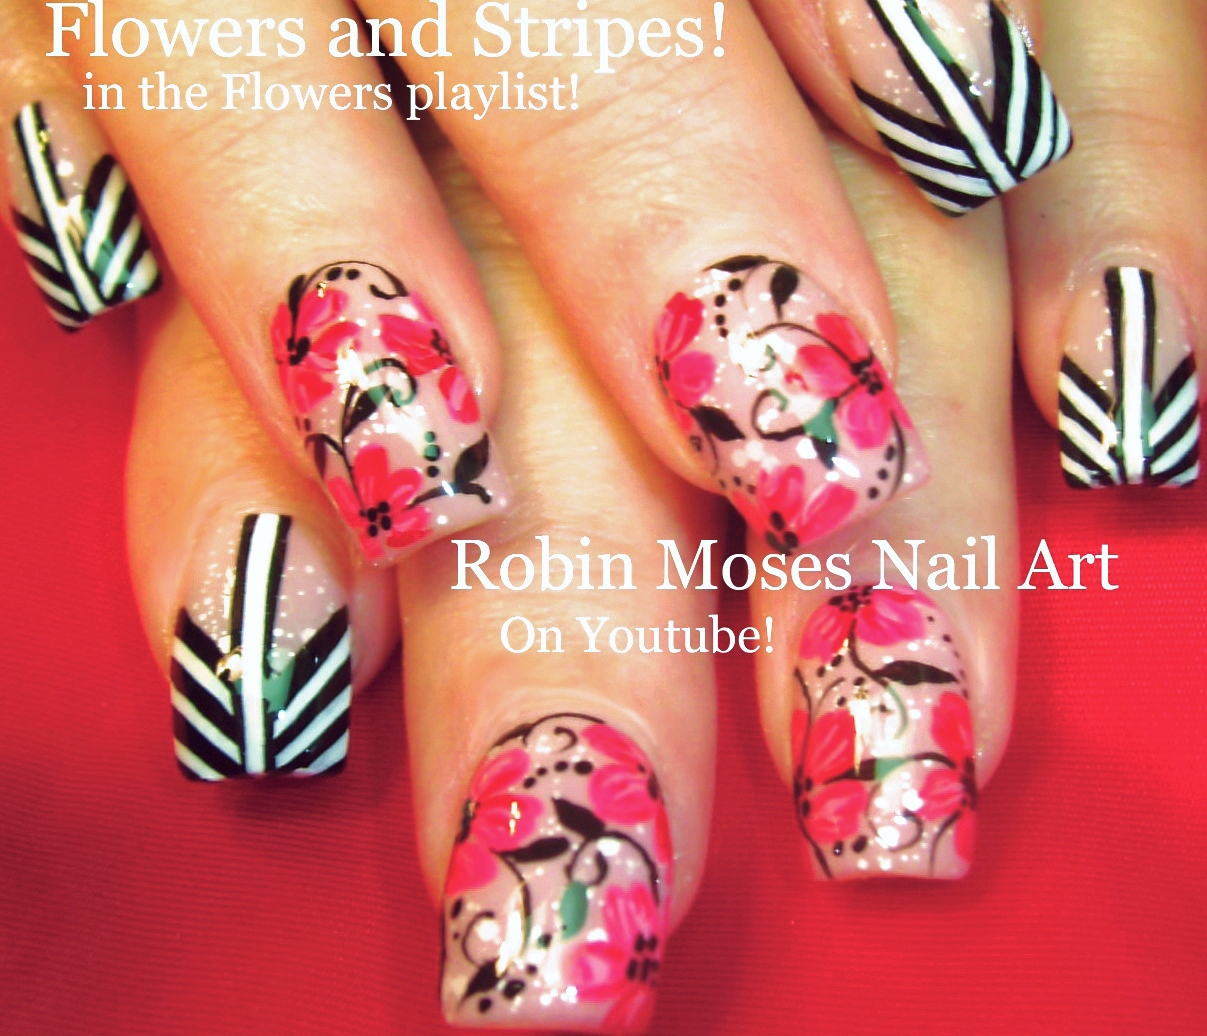 Robin Moses Nail Art February 2015: Nail Art By Robin Moses: DIY Fall Nails! Red Flowers On